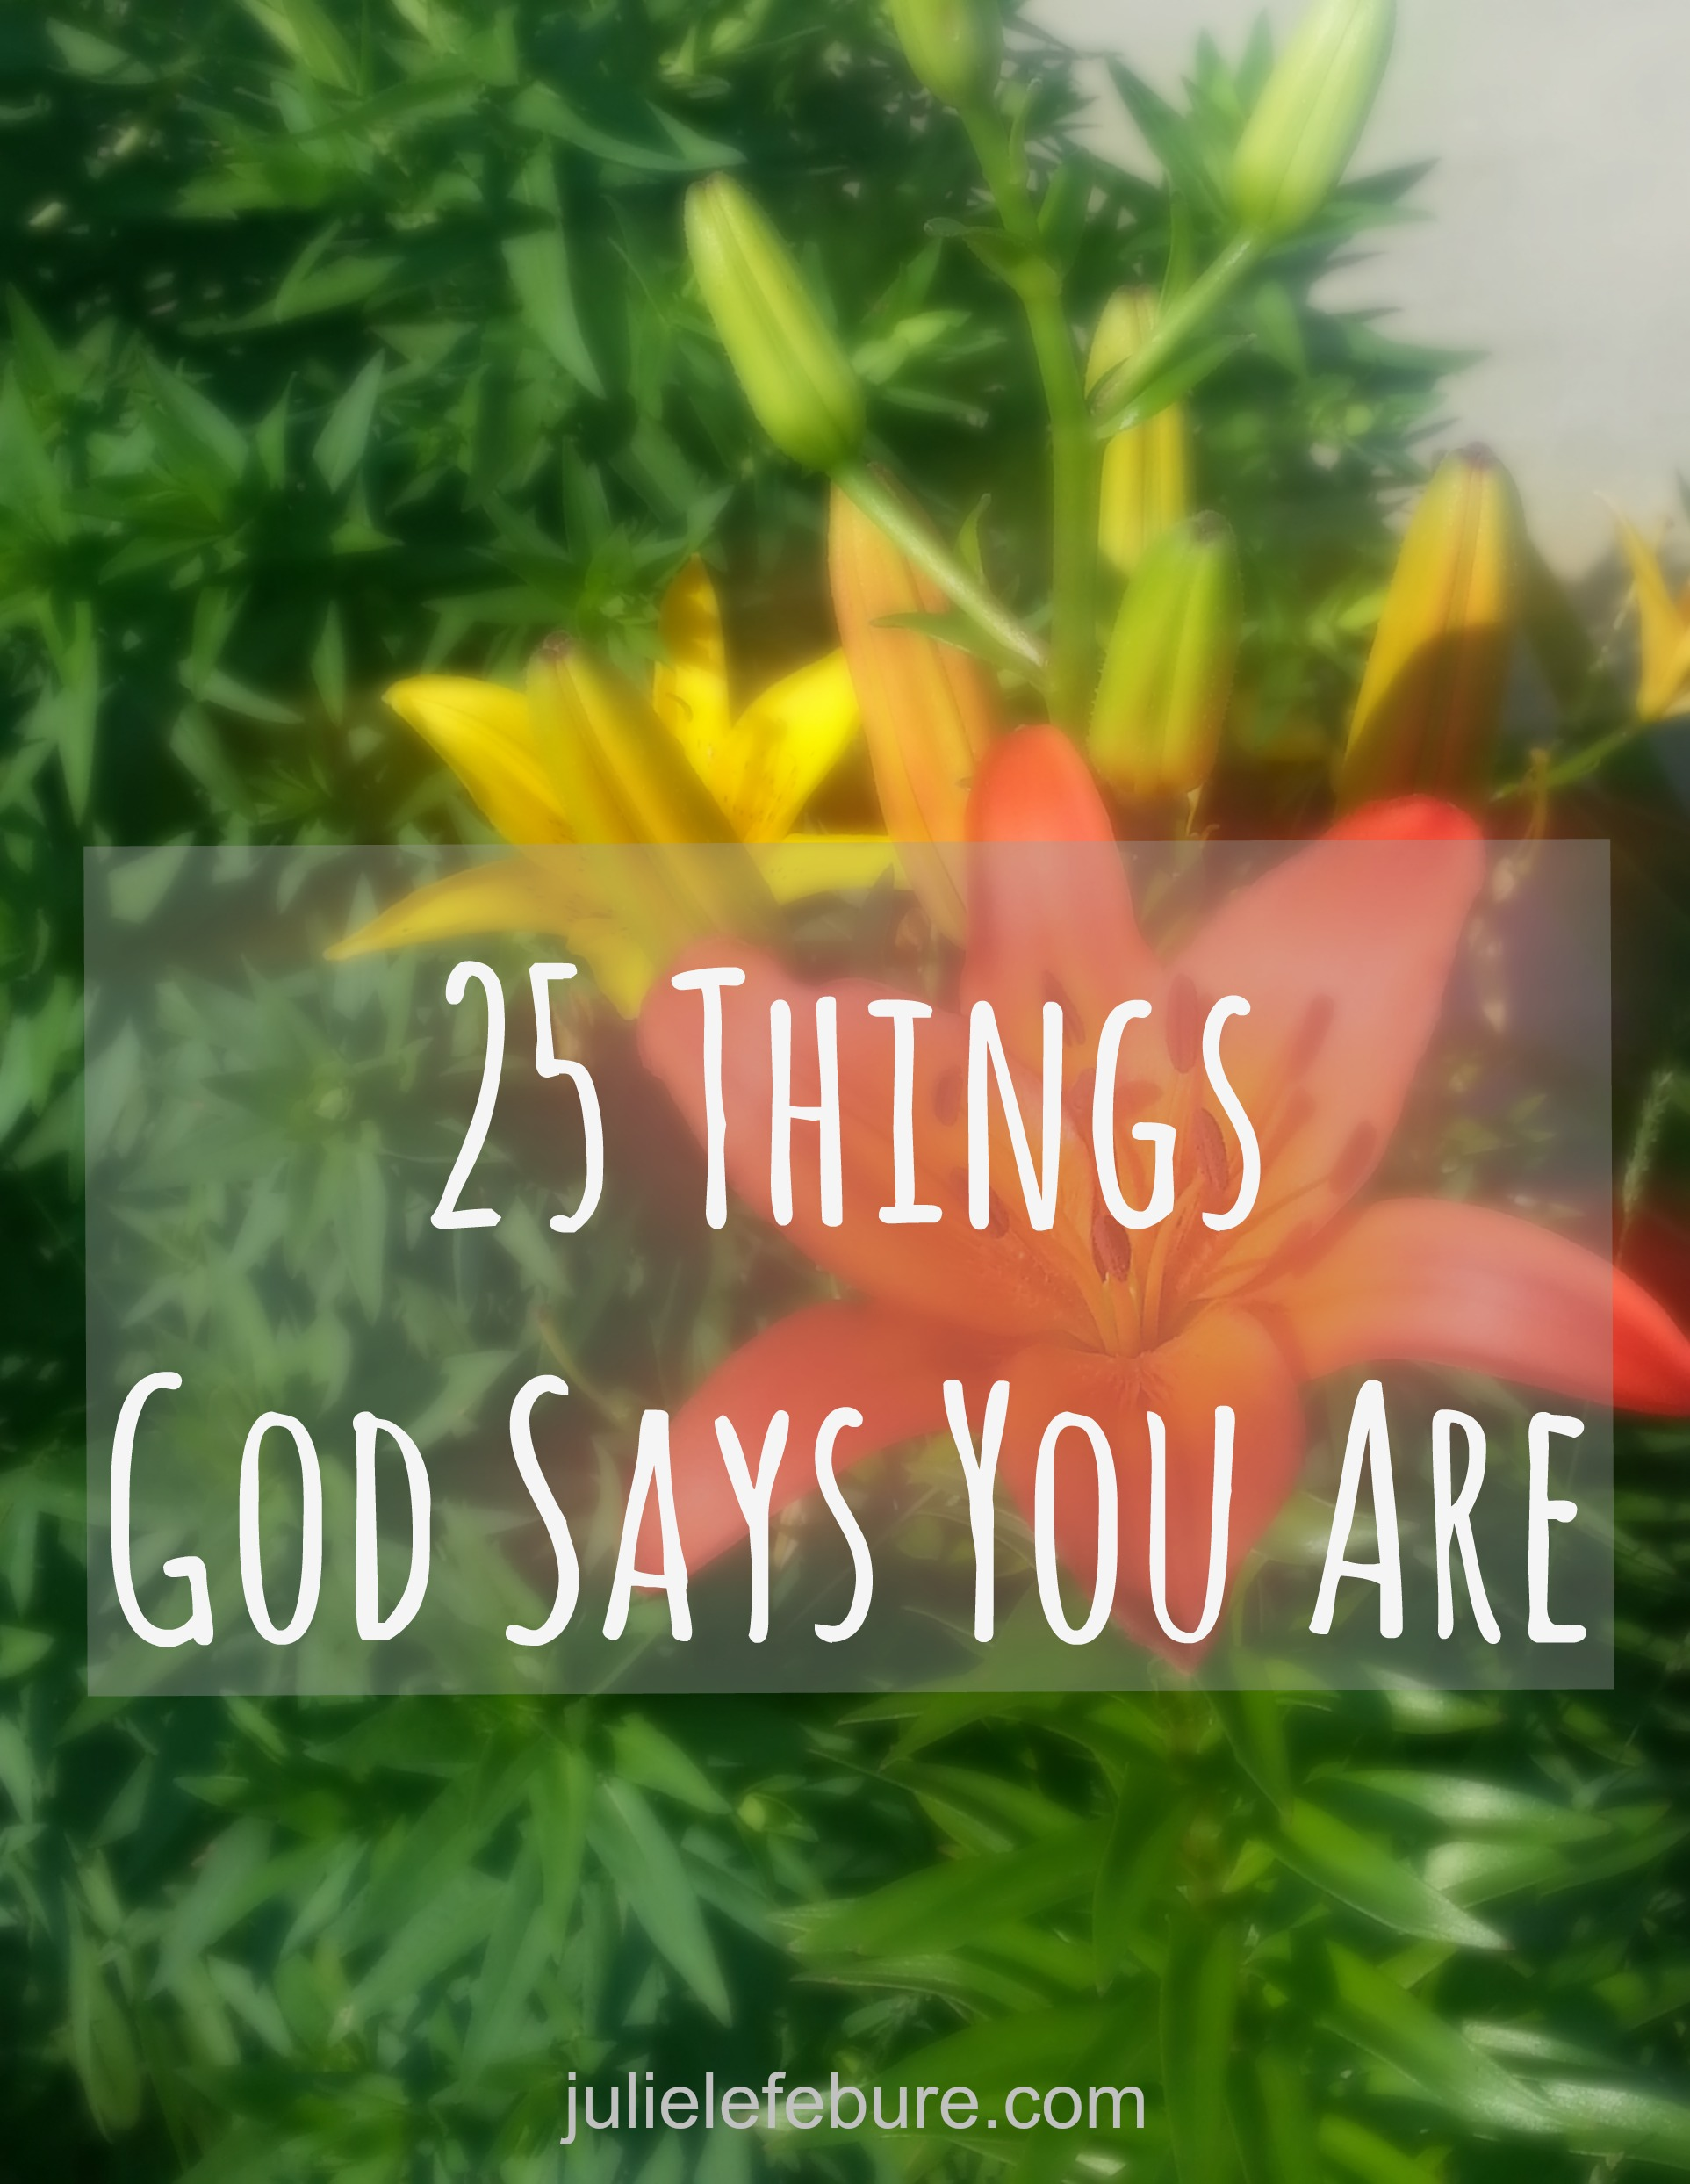 25 Things God Says You Are